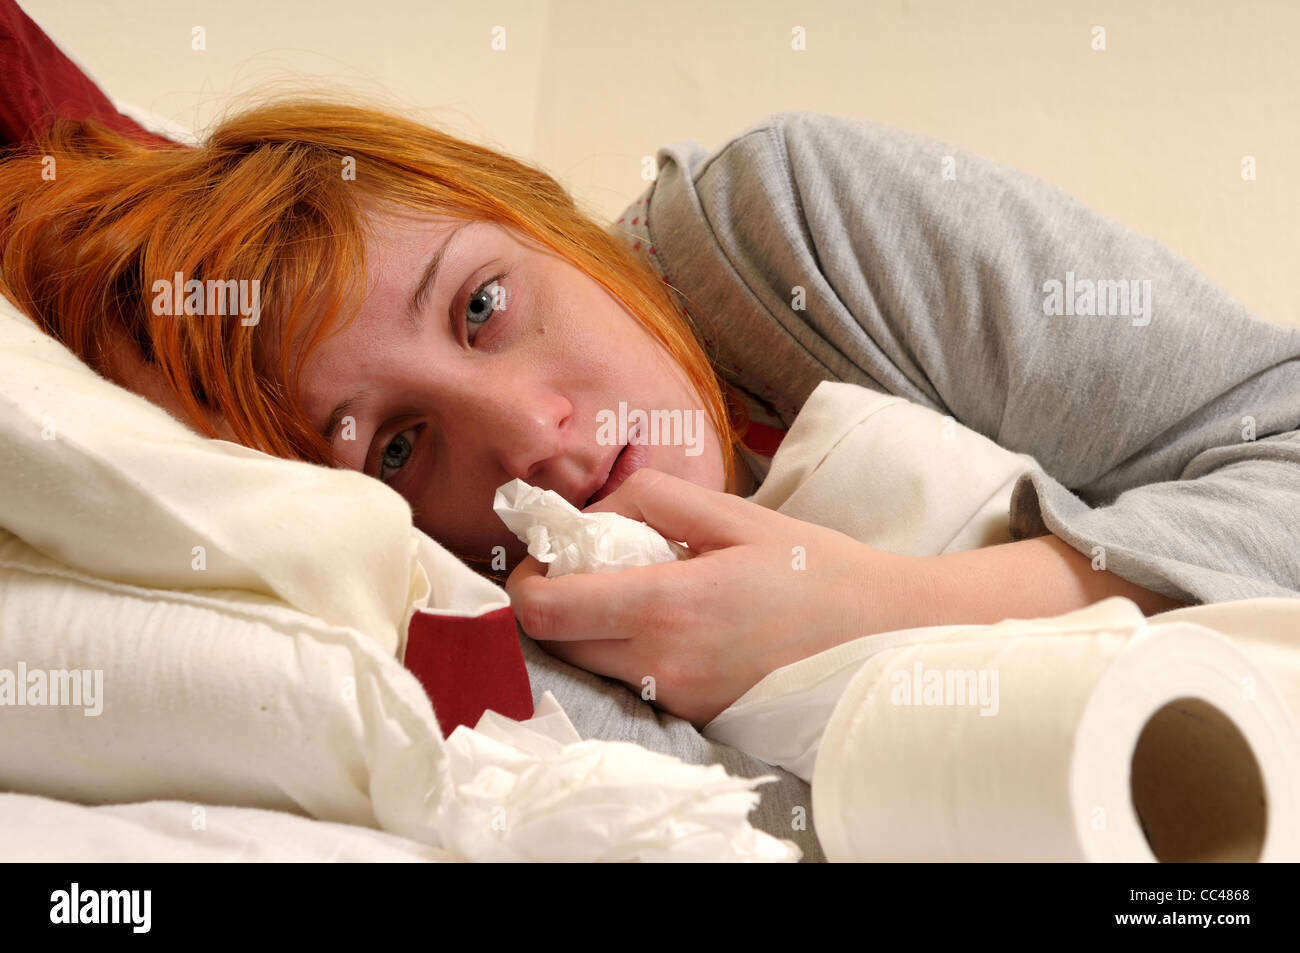 Young Women In Bed Unwell. - Stock Image